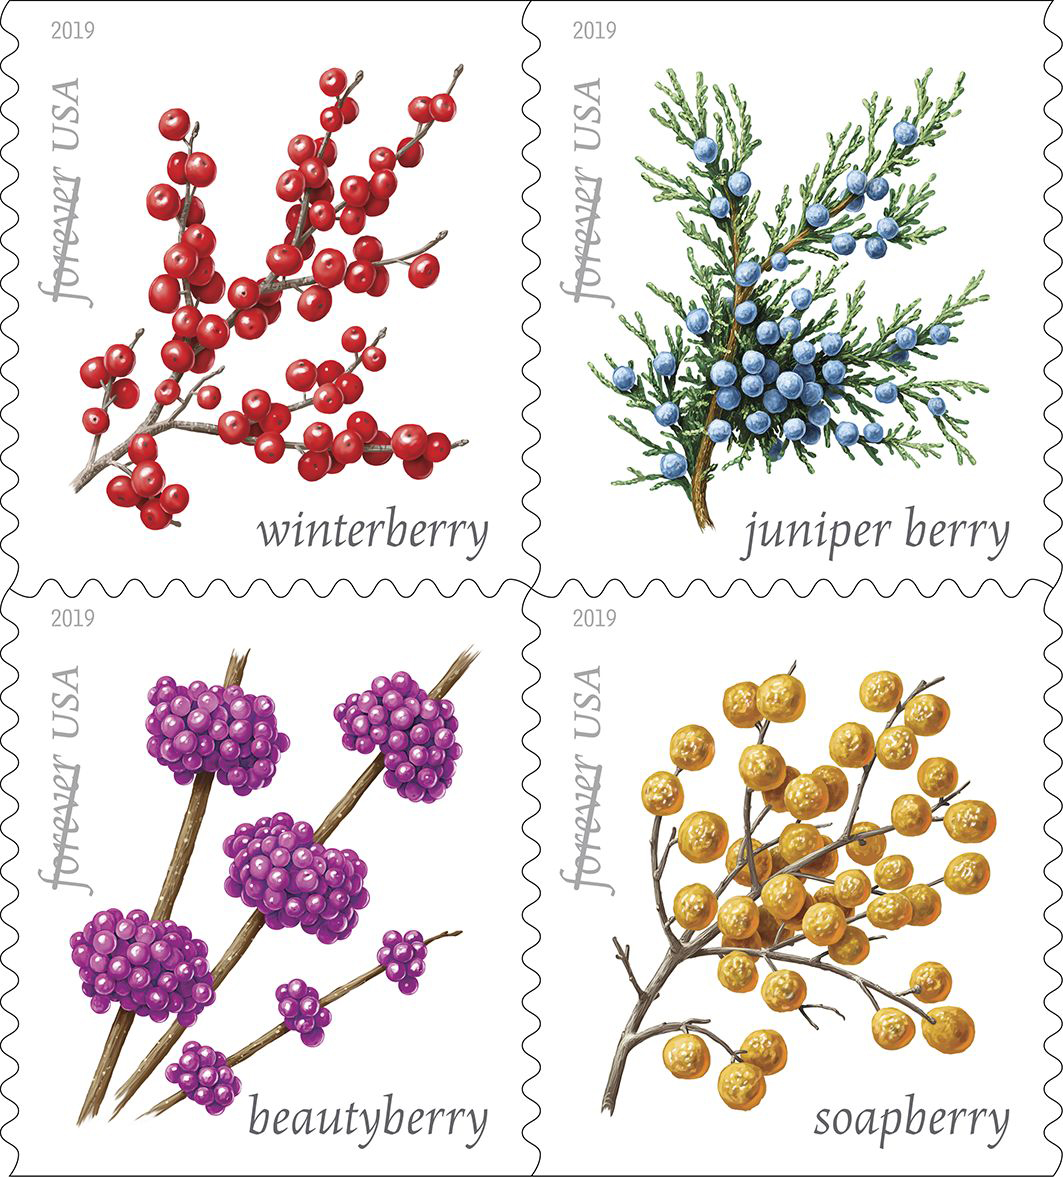 112018_blog-winter-berrys-USPS19STA003